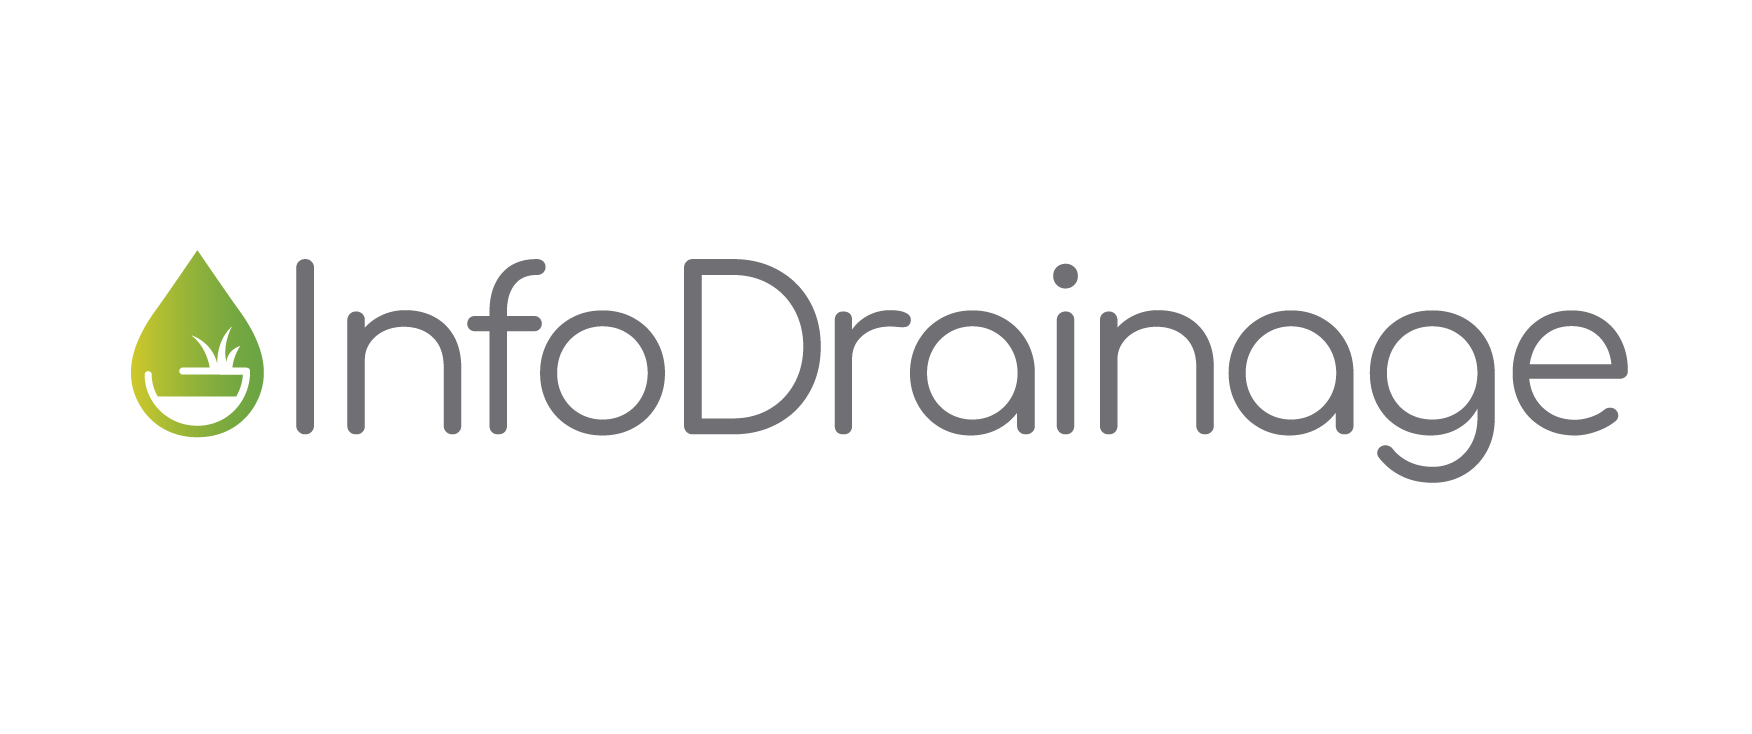 InfoDrainage 2020.1 Help Documentation